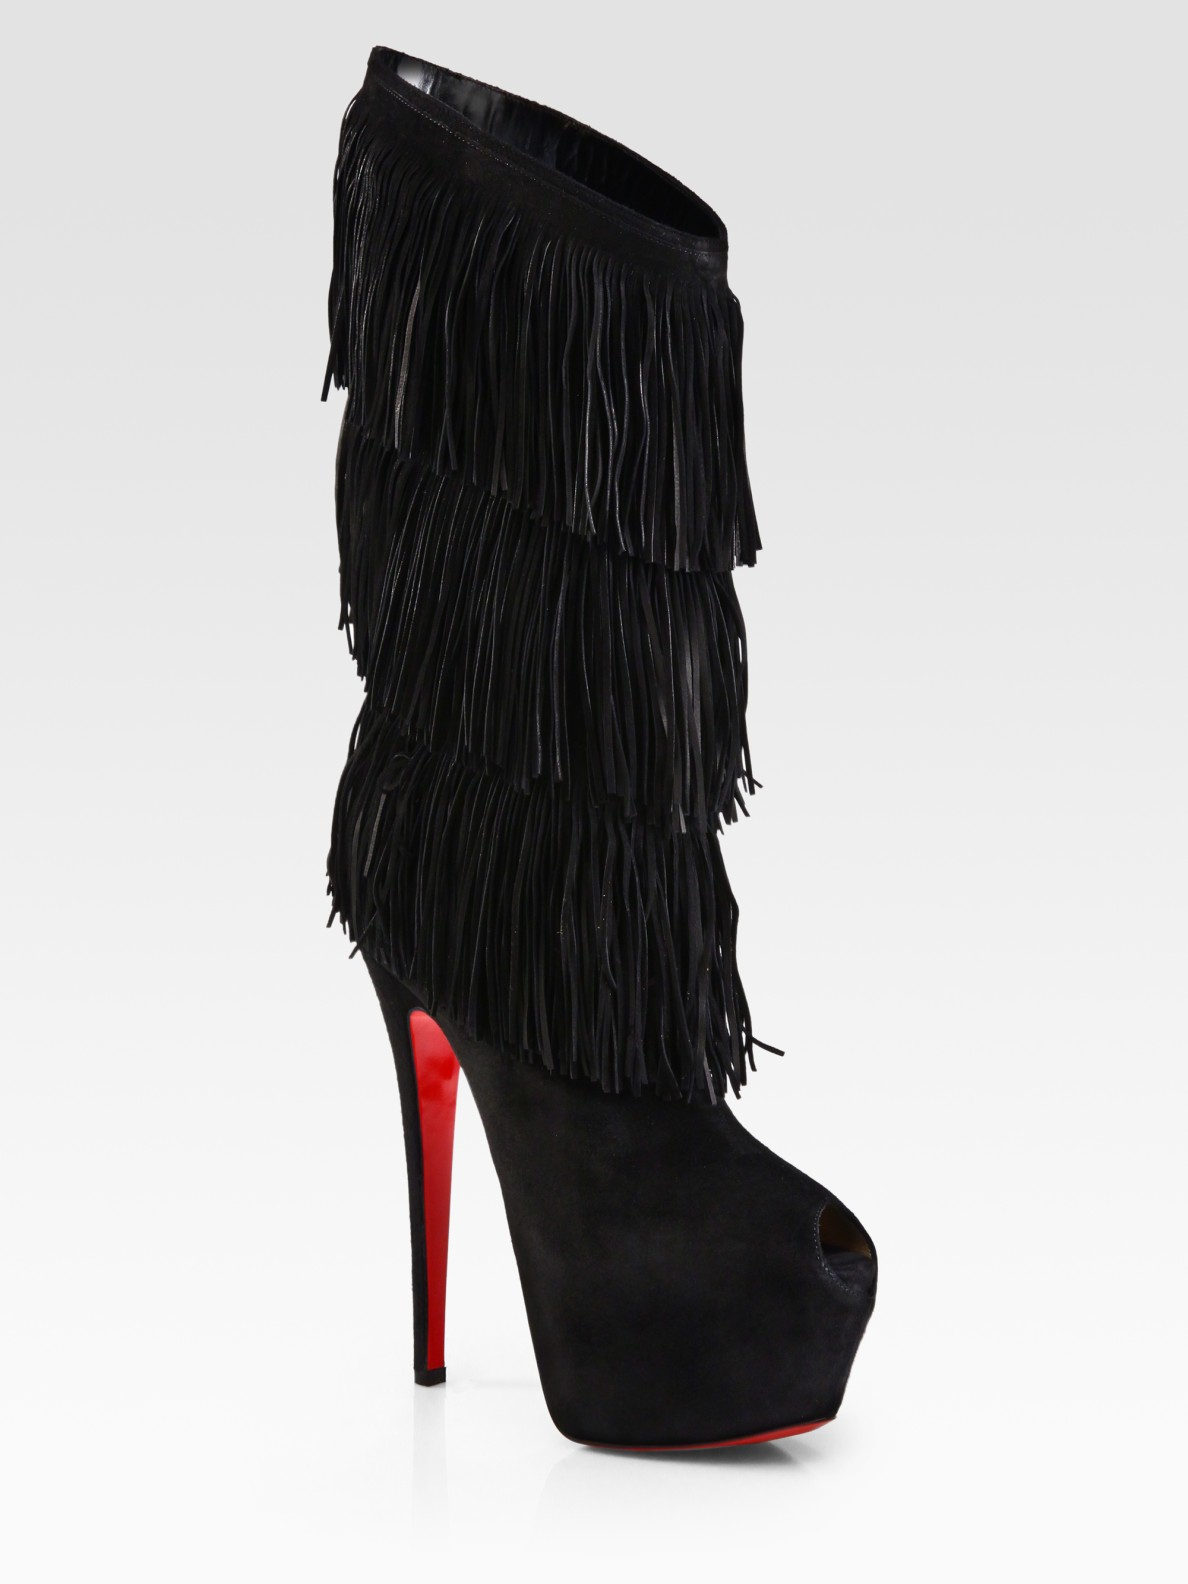 replica christian louboutin boots - christian louboutin Cate knee-high boots | cosmetics digital ...